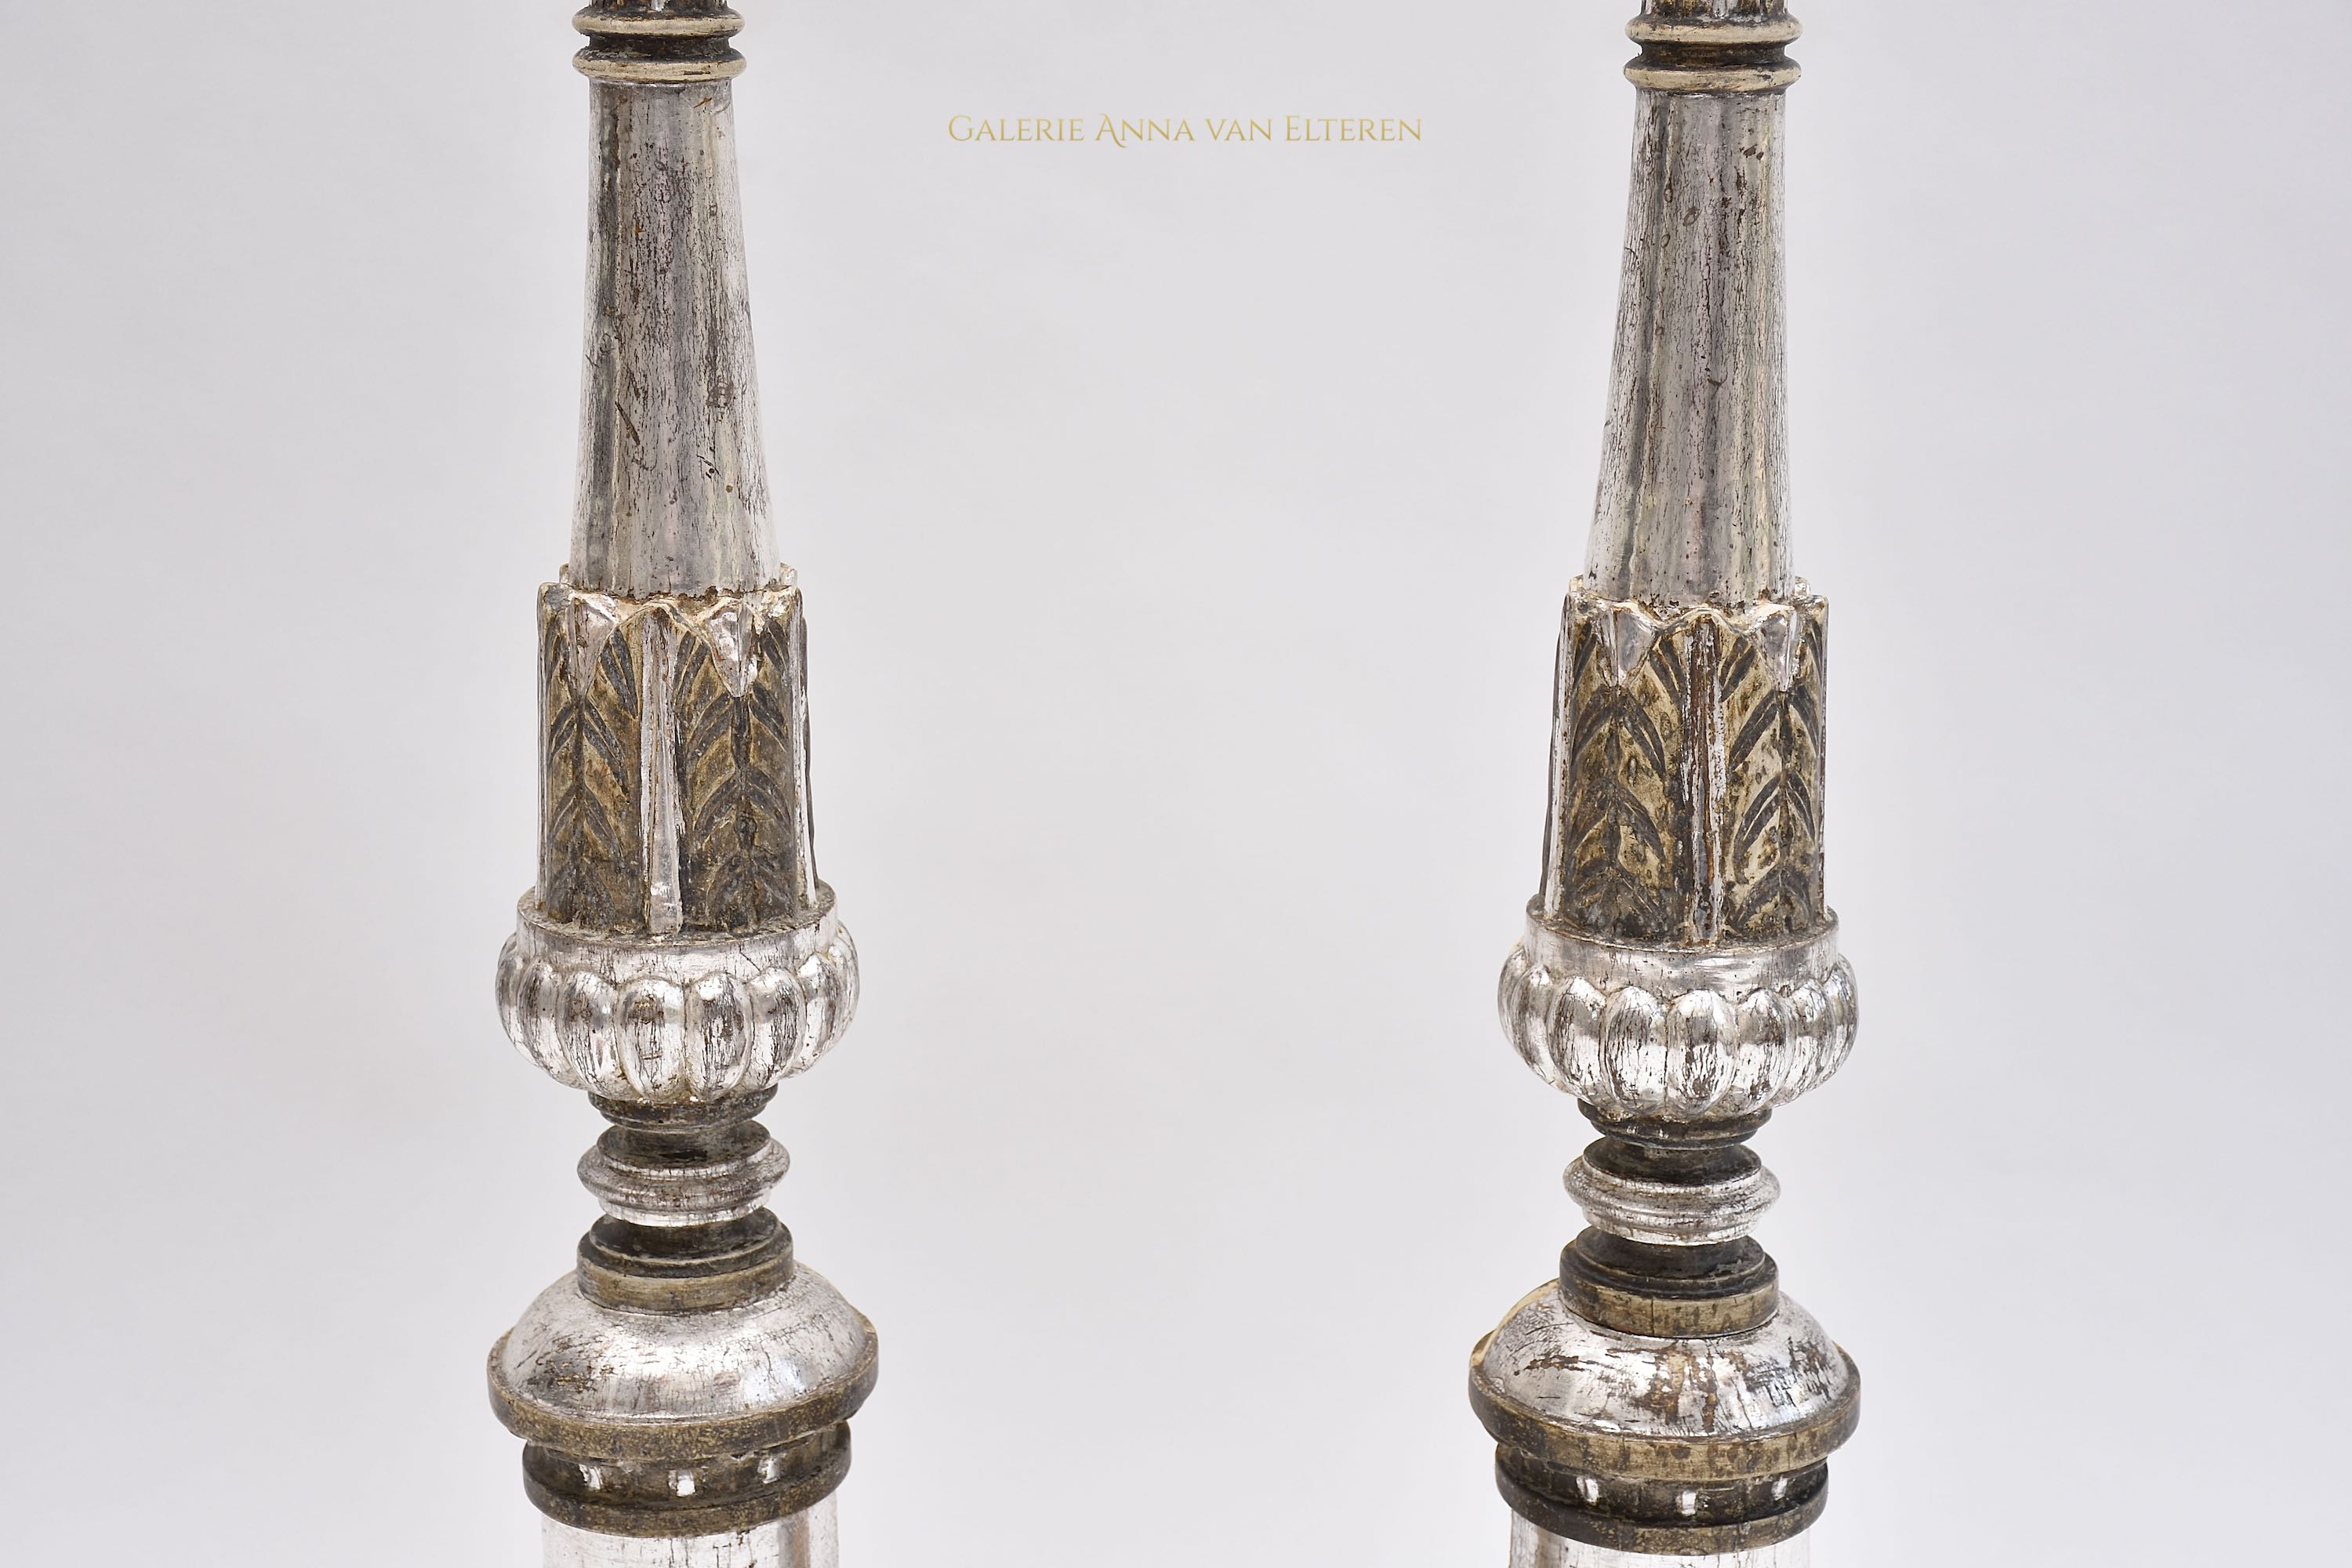 A pair of large 19th c. Italian torcheres